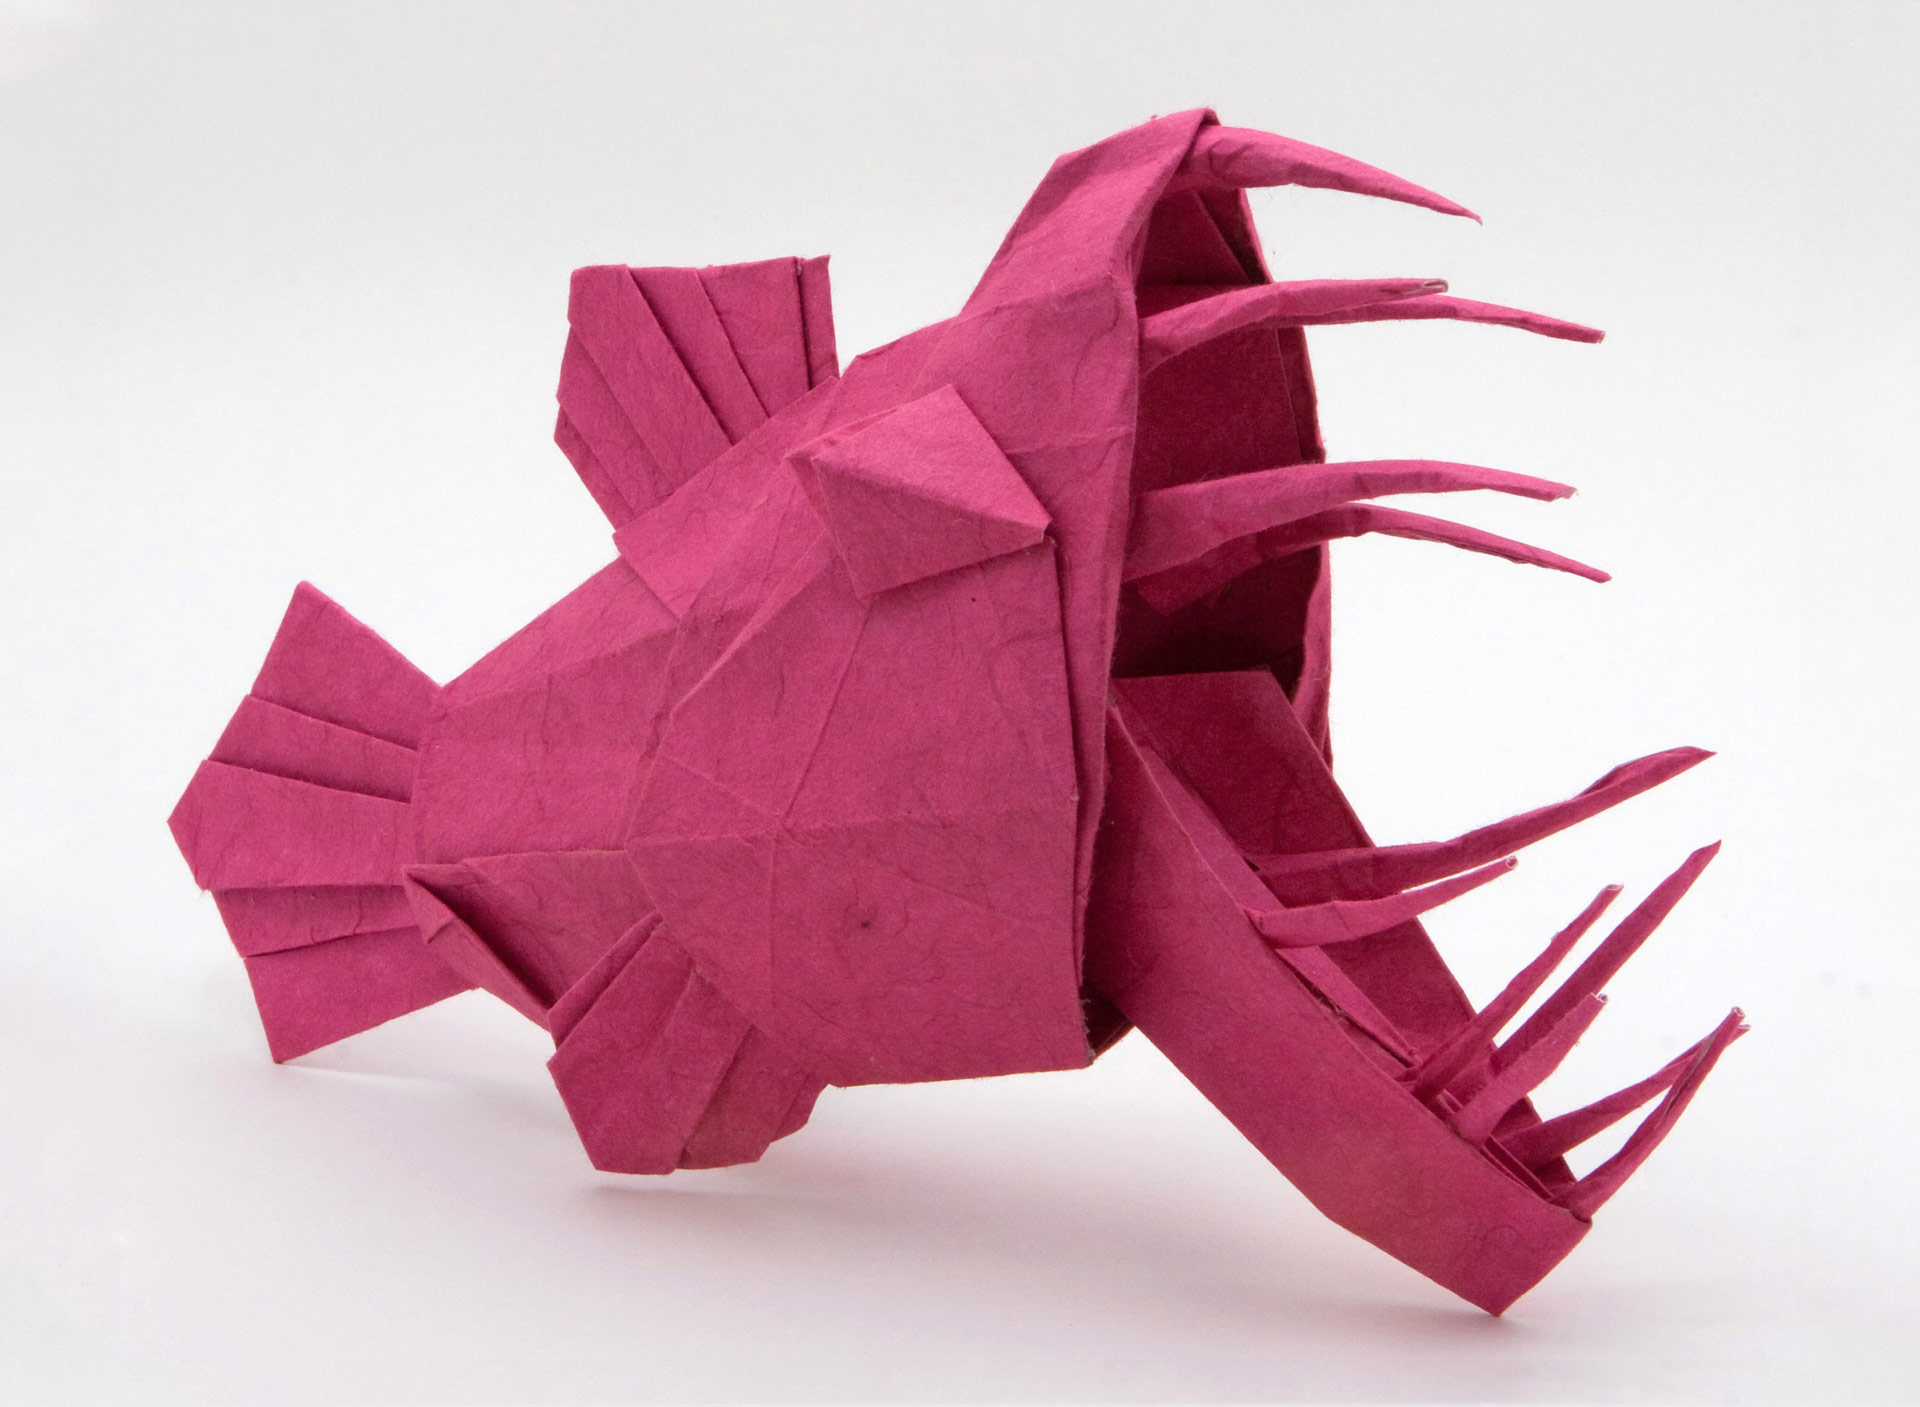 Bunraku 2010 Art Of The Title Origami Dinosaurs A List Online Origamidinosaur Diagrams View Full Size